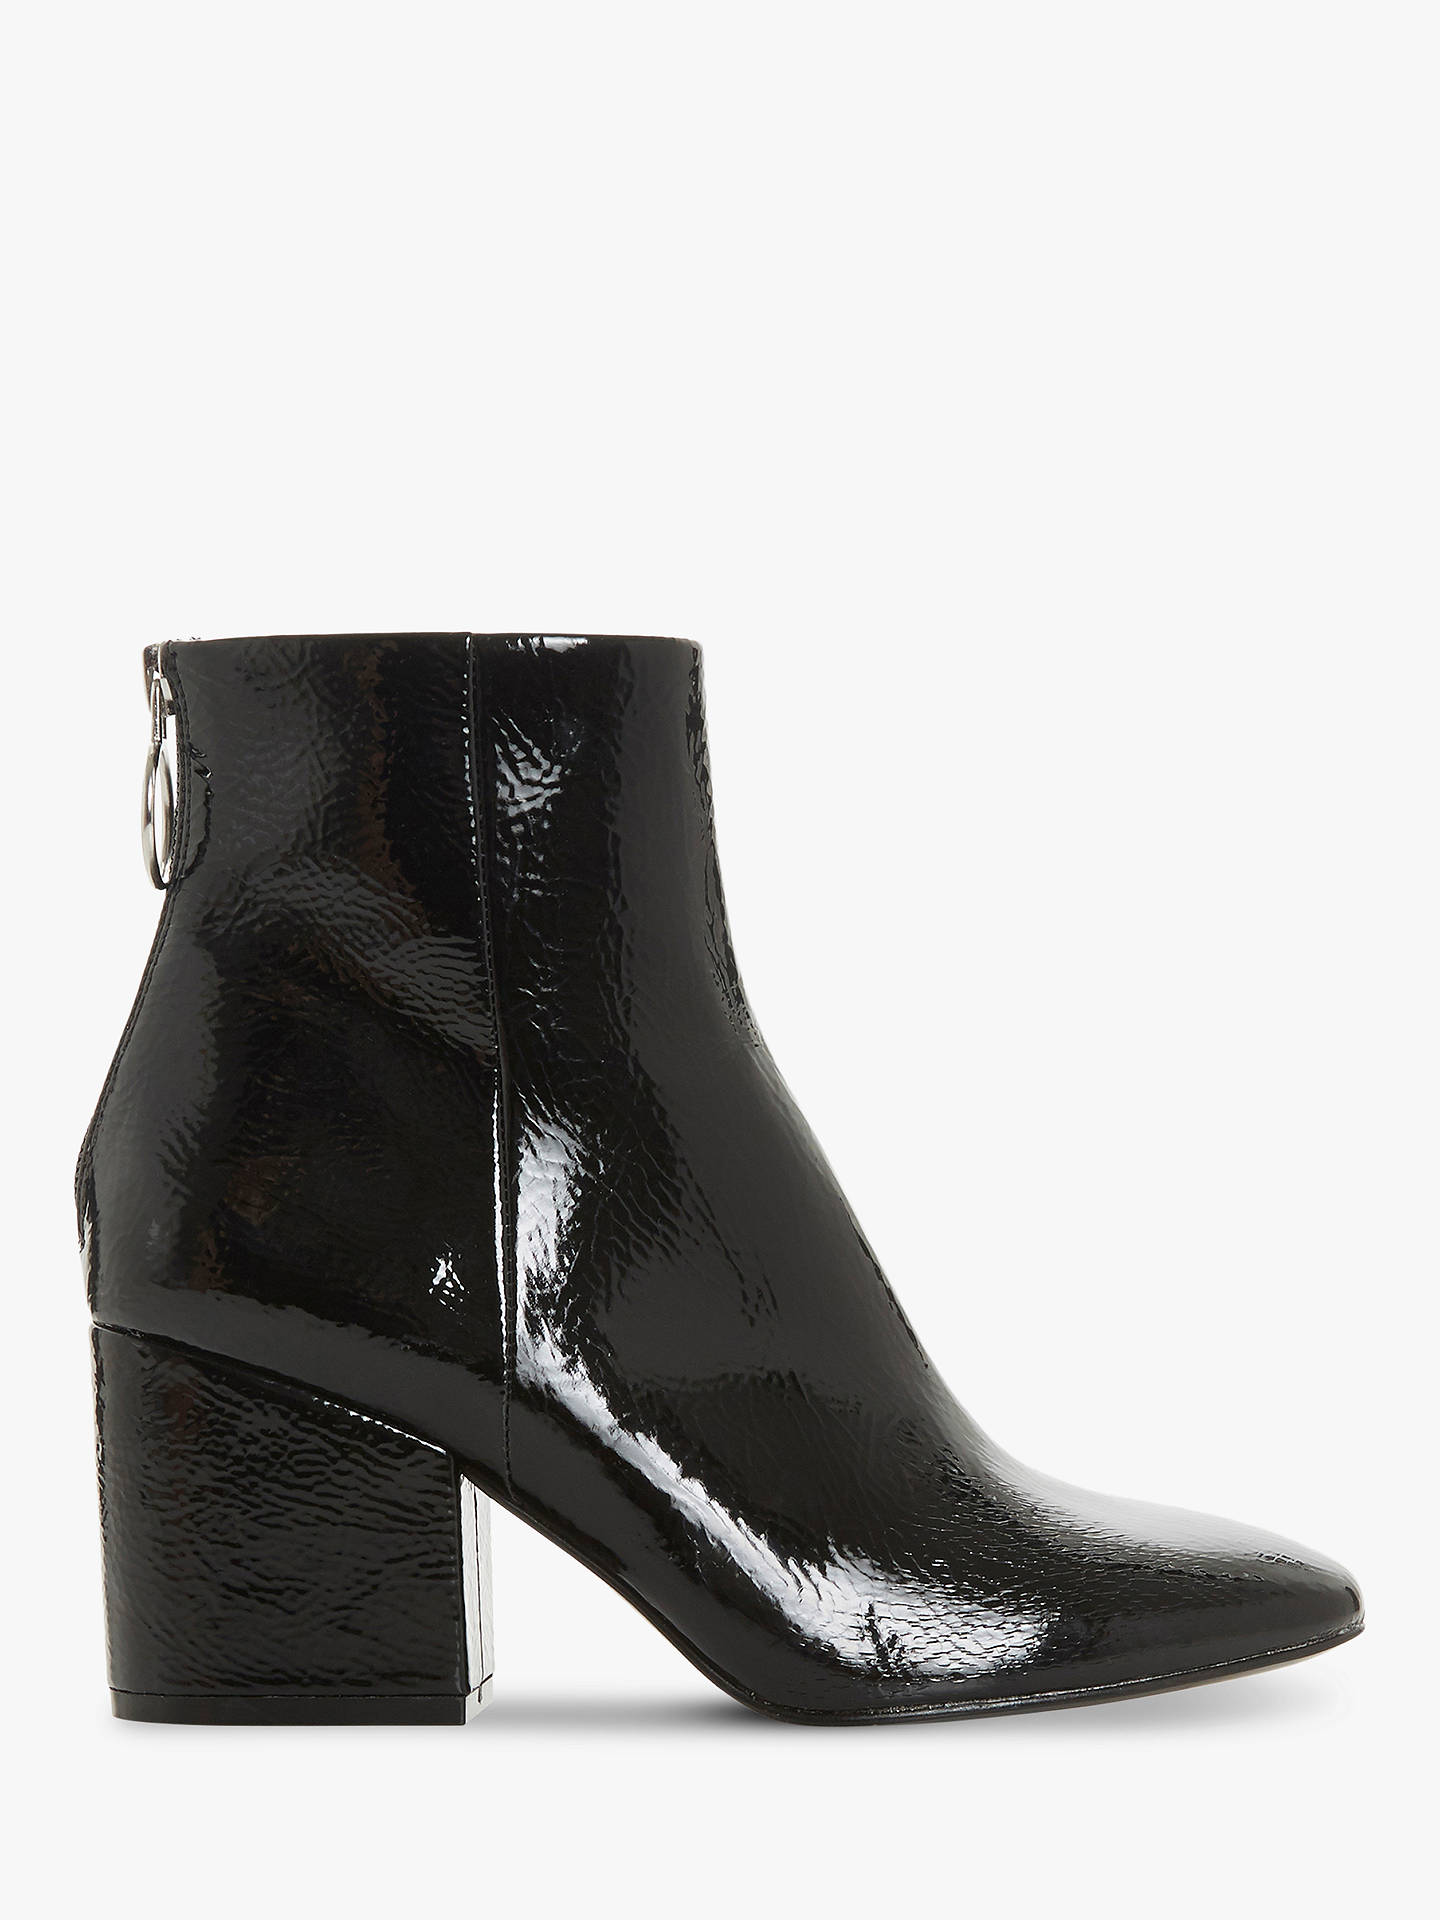 BuySteve Madden Break O-Ring Patent Block Heel Ankle Boots, Black, 3 Online at johnlewis.com